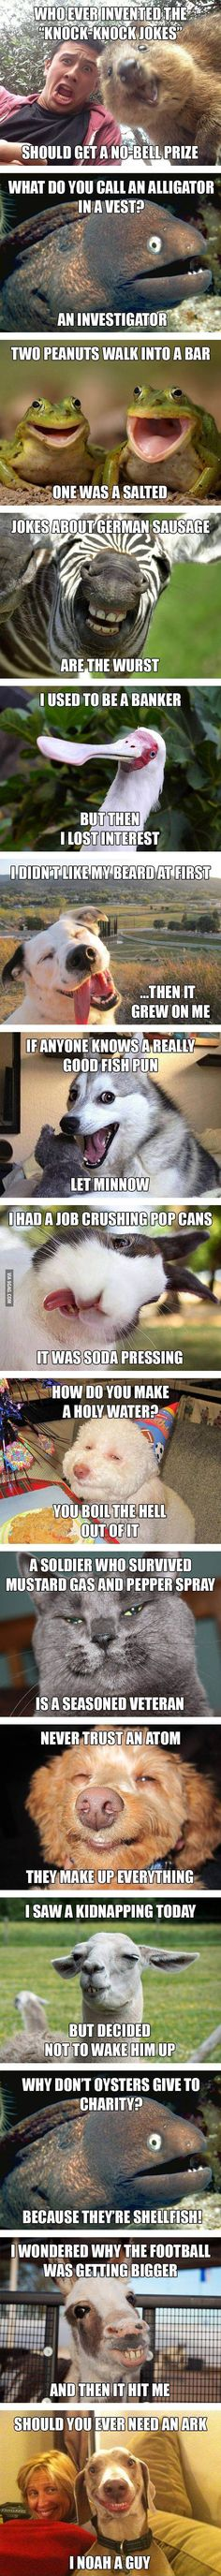 Animals think they're so funny very punny... Via 9gag FacebookGoogleTwitterPinterestEmailStumbleUponRedditTumblrComments comments